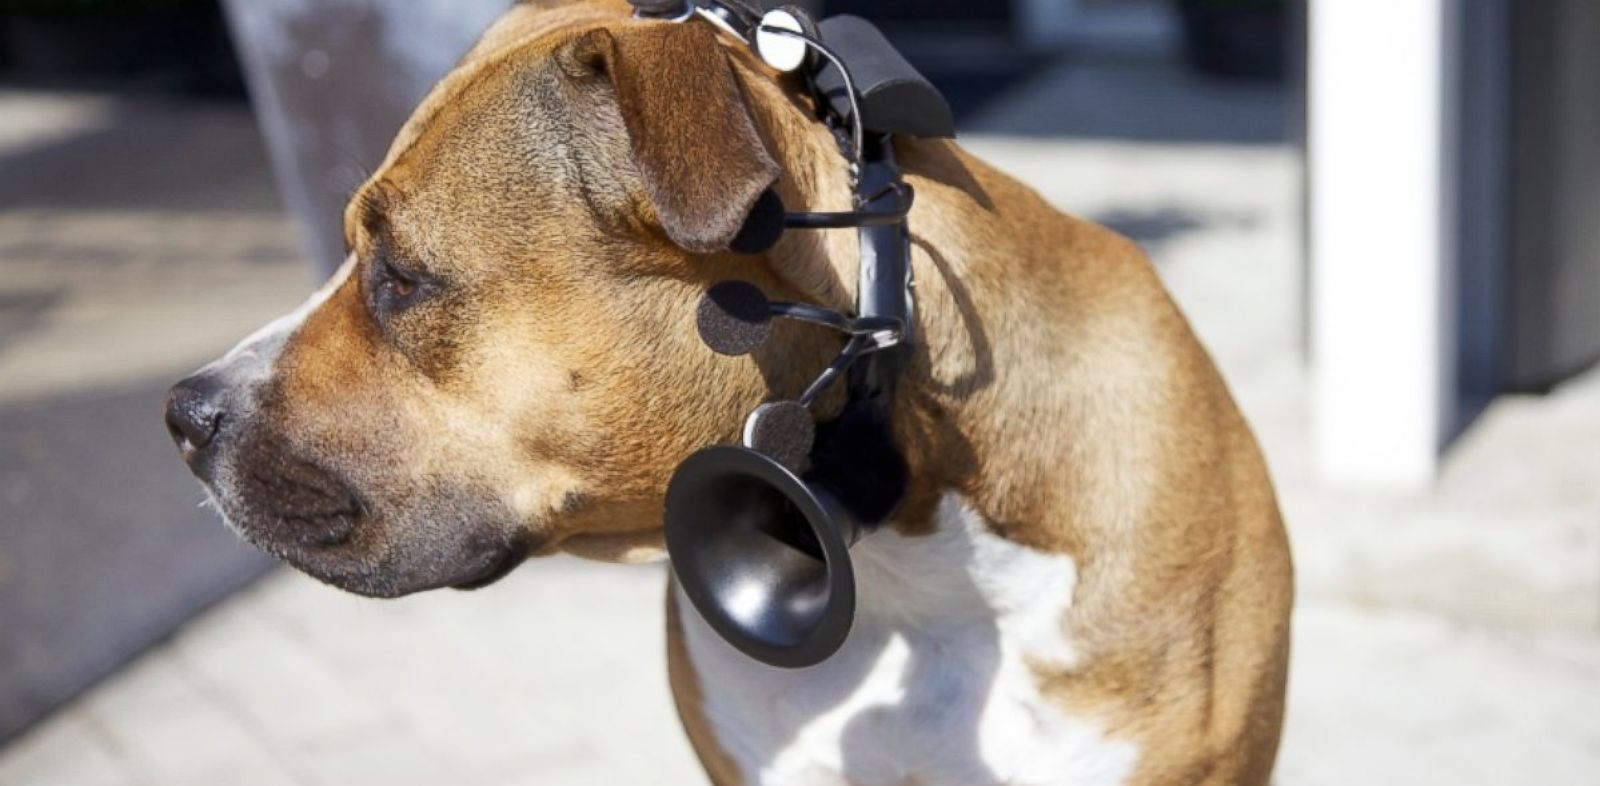 PHOTO: No More Woof headset translated canine thoughts into words.